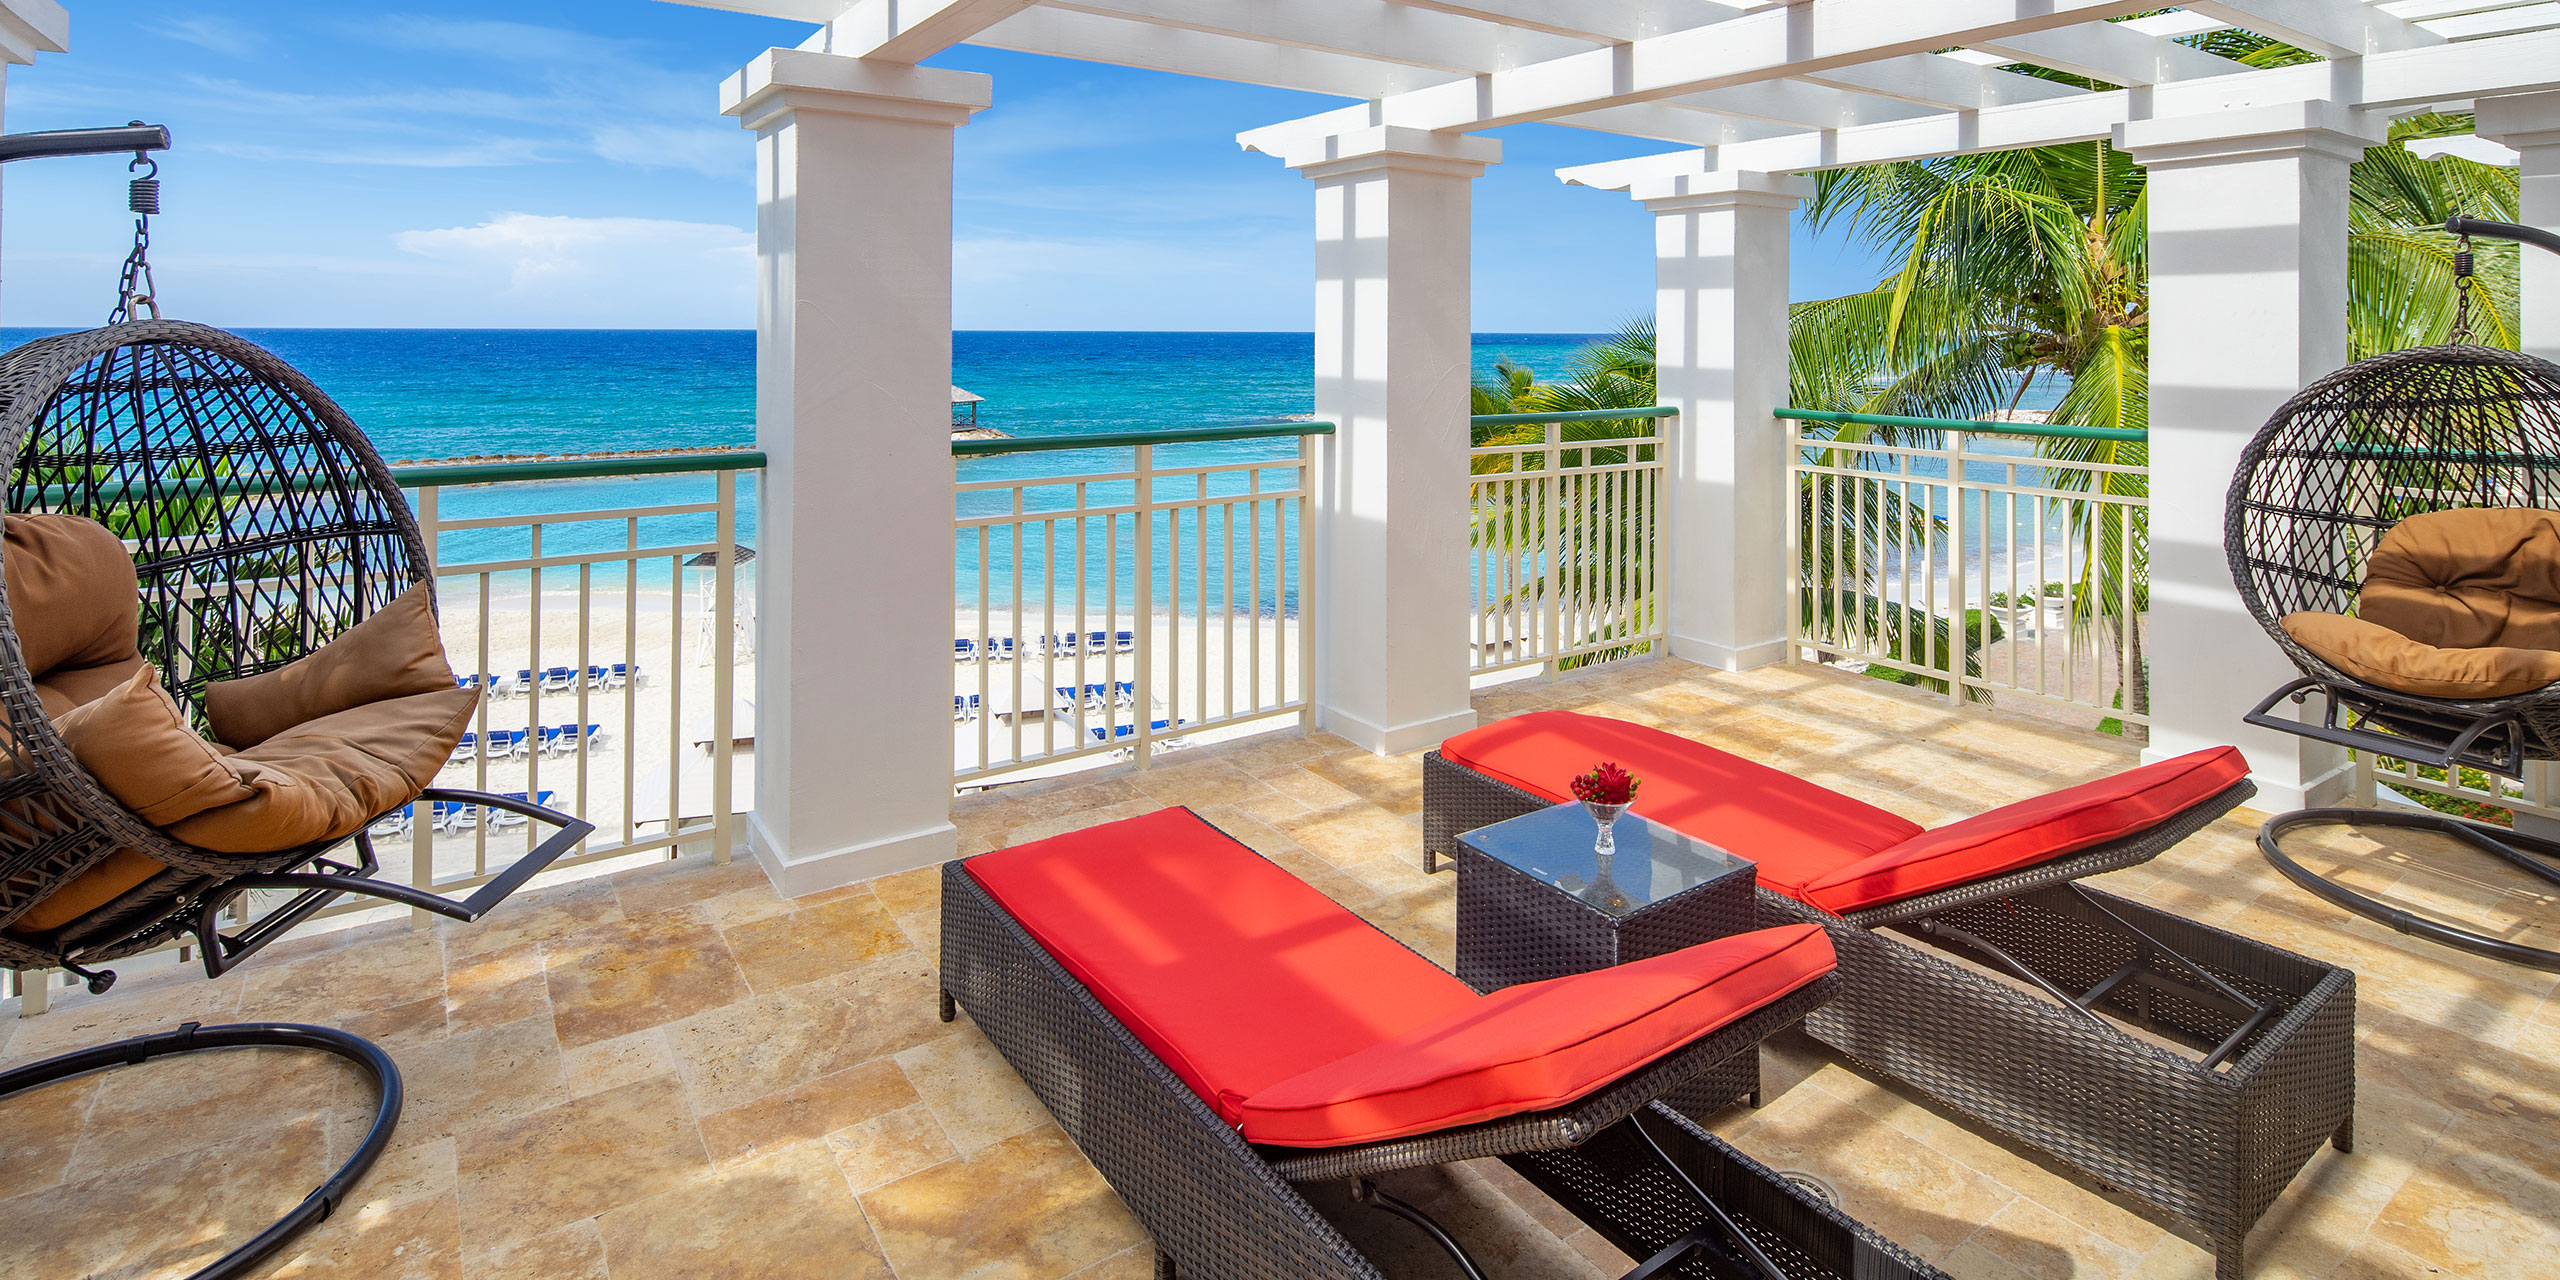 Balcony at Jewel Grande Montego Bay Resort & Spa in Jamaica; Courtesy of Jewel Grande Montego Bay Resort & Spa